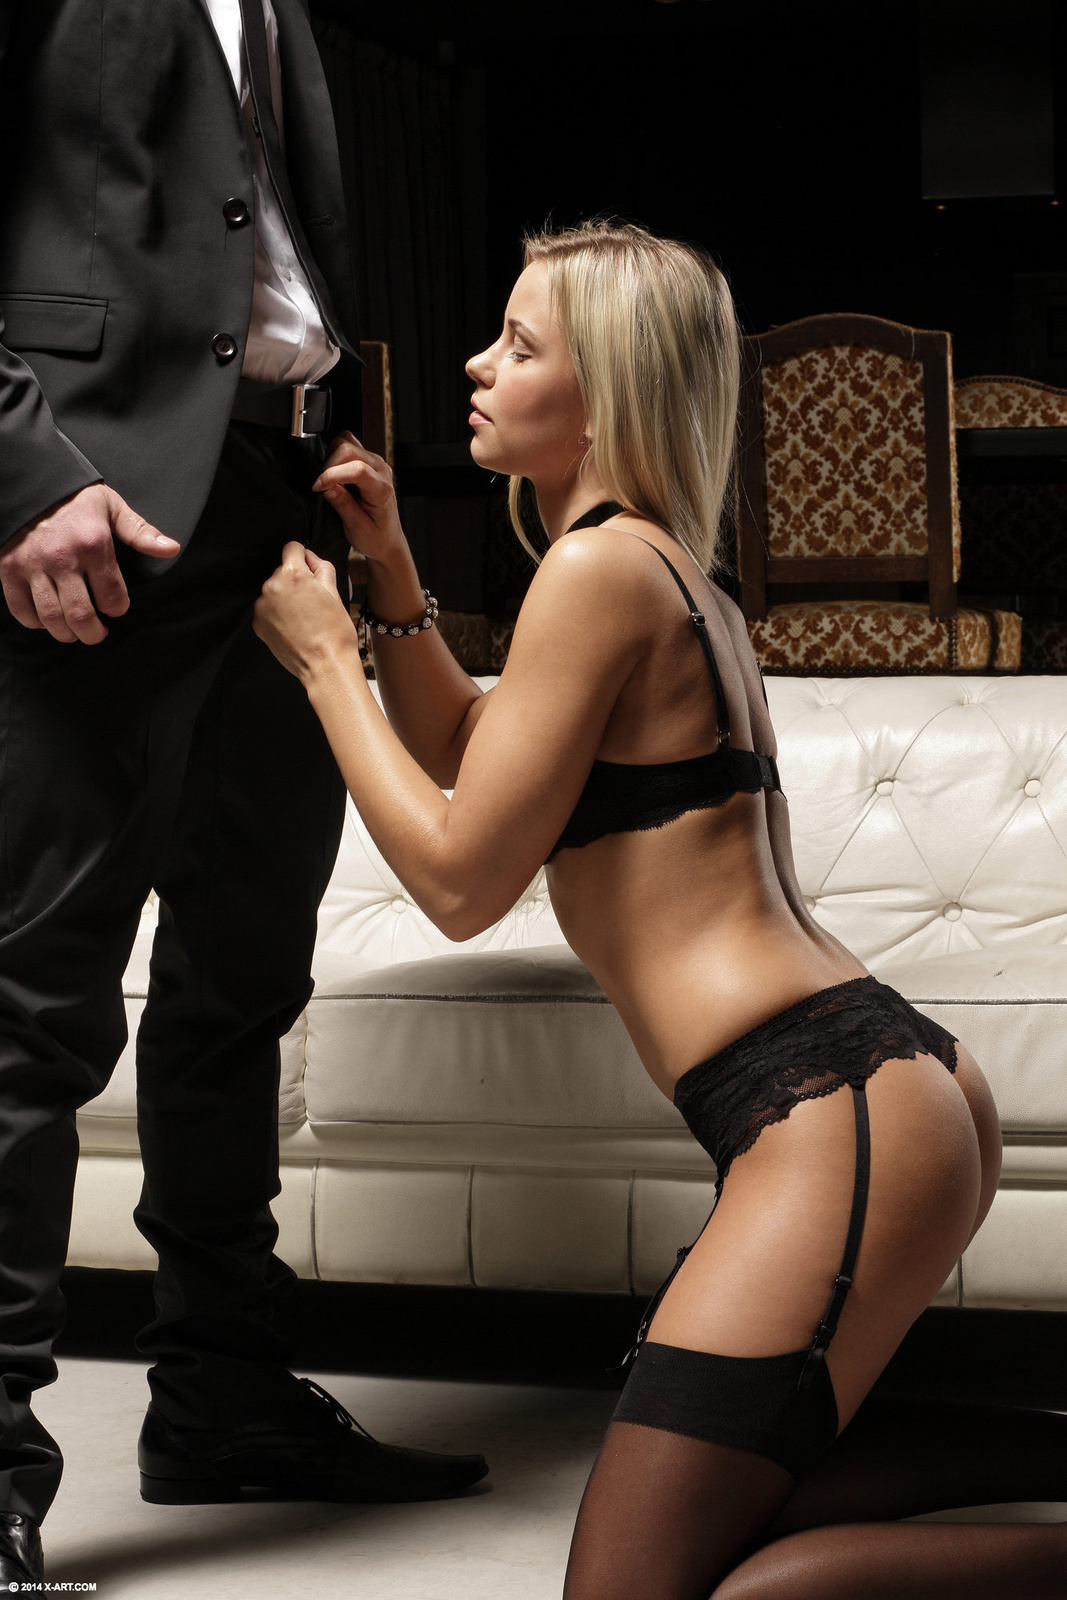 Party wife sex